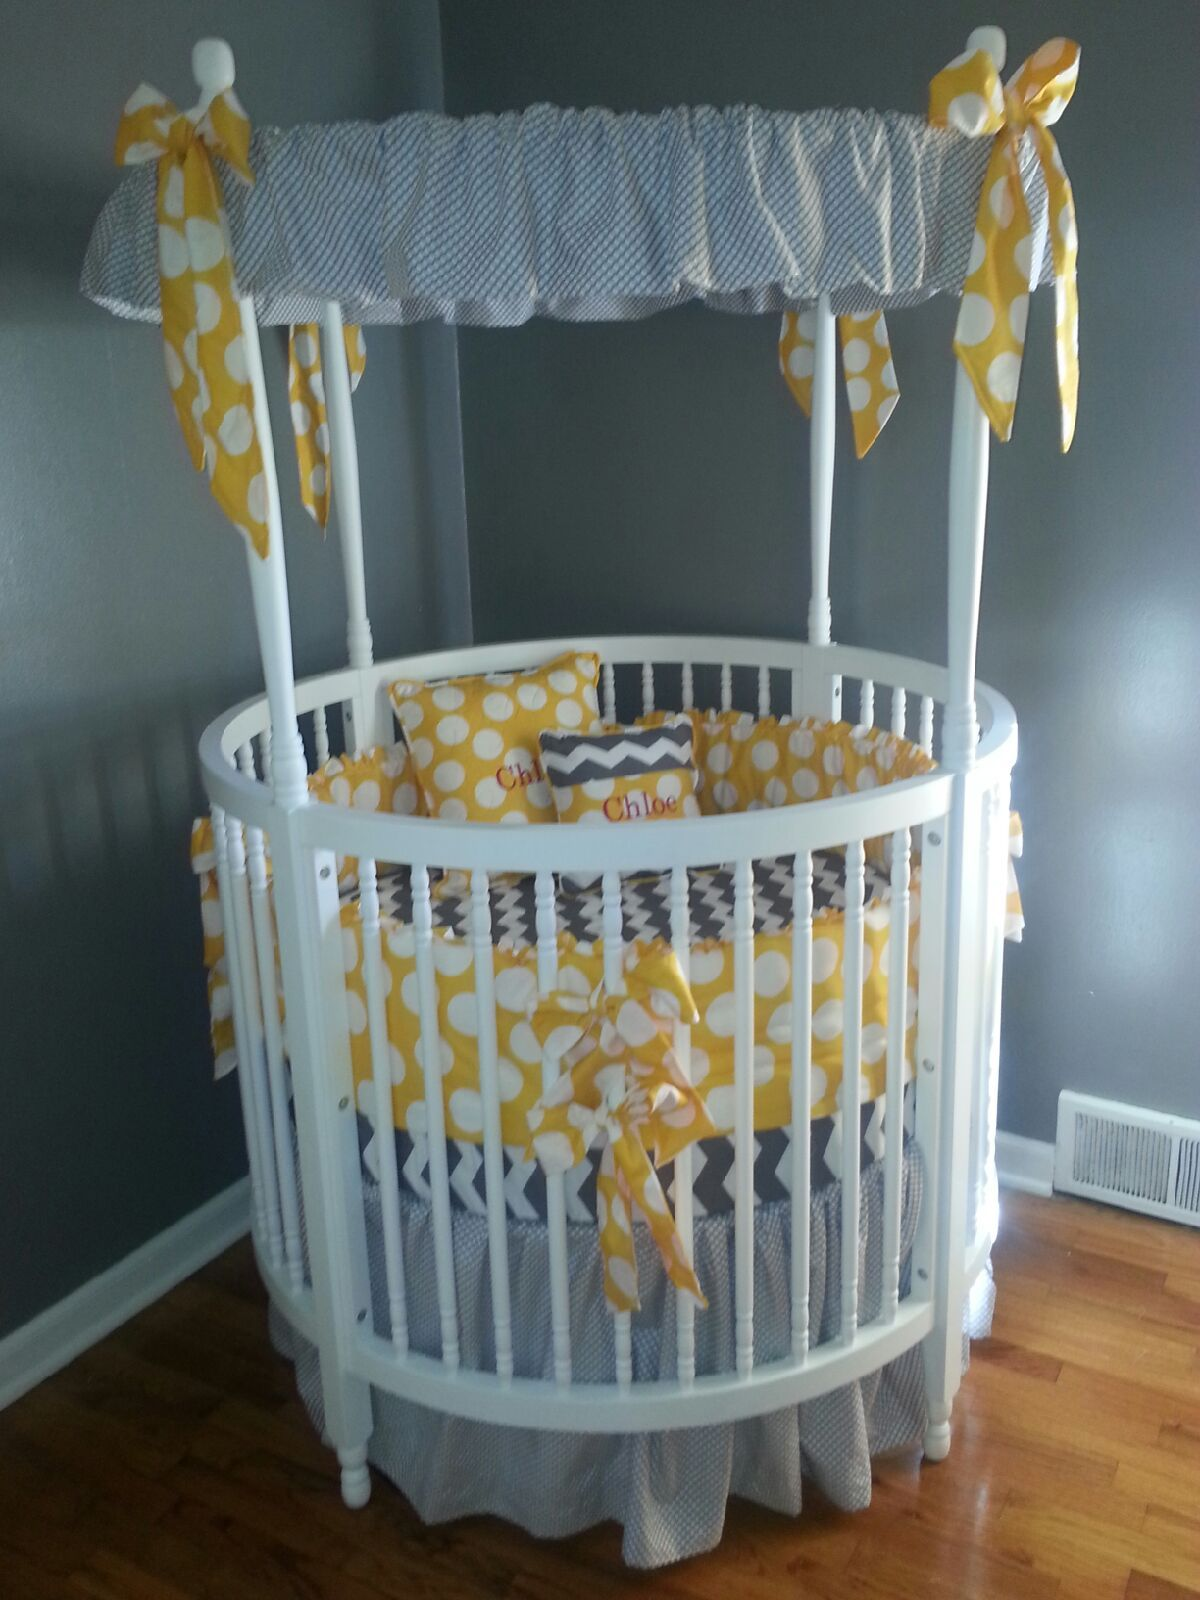 Pin By Allison Rhodes On Future Kids One Day Round Baby Cribs